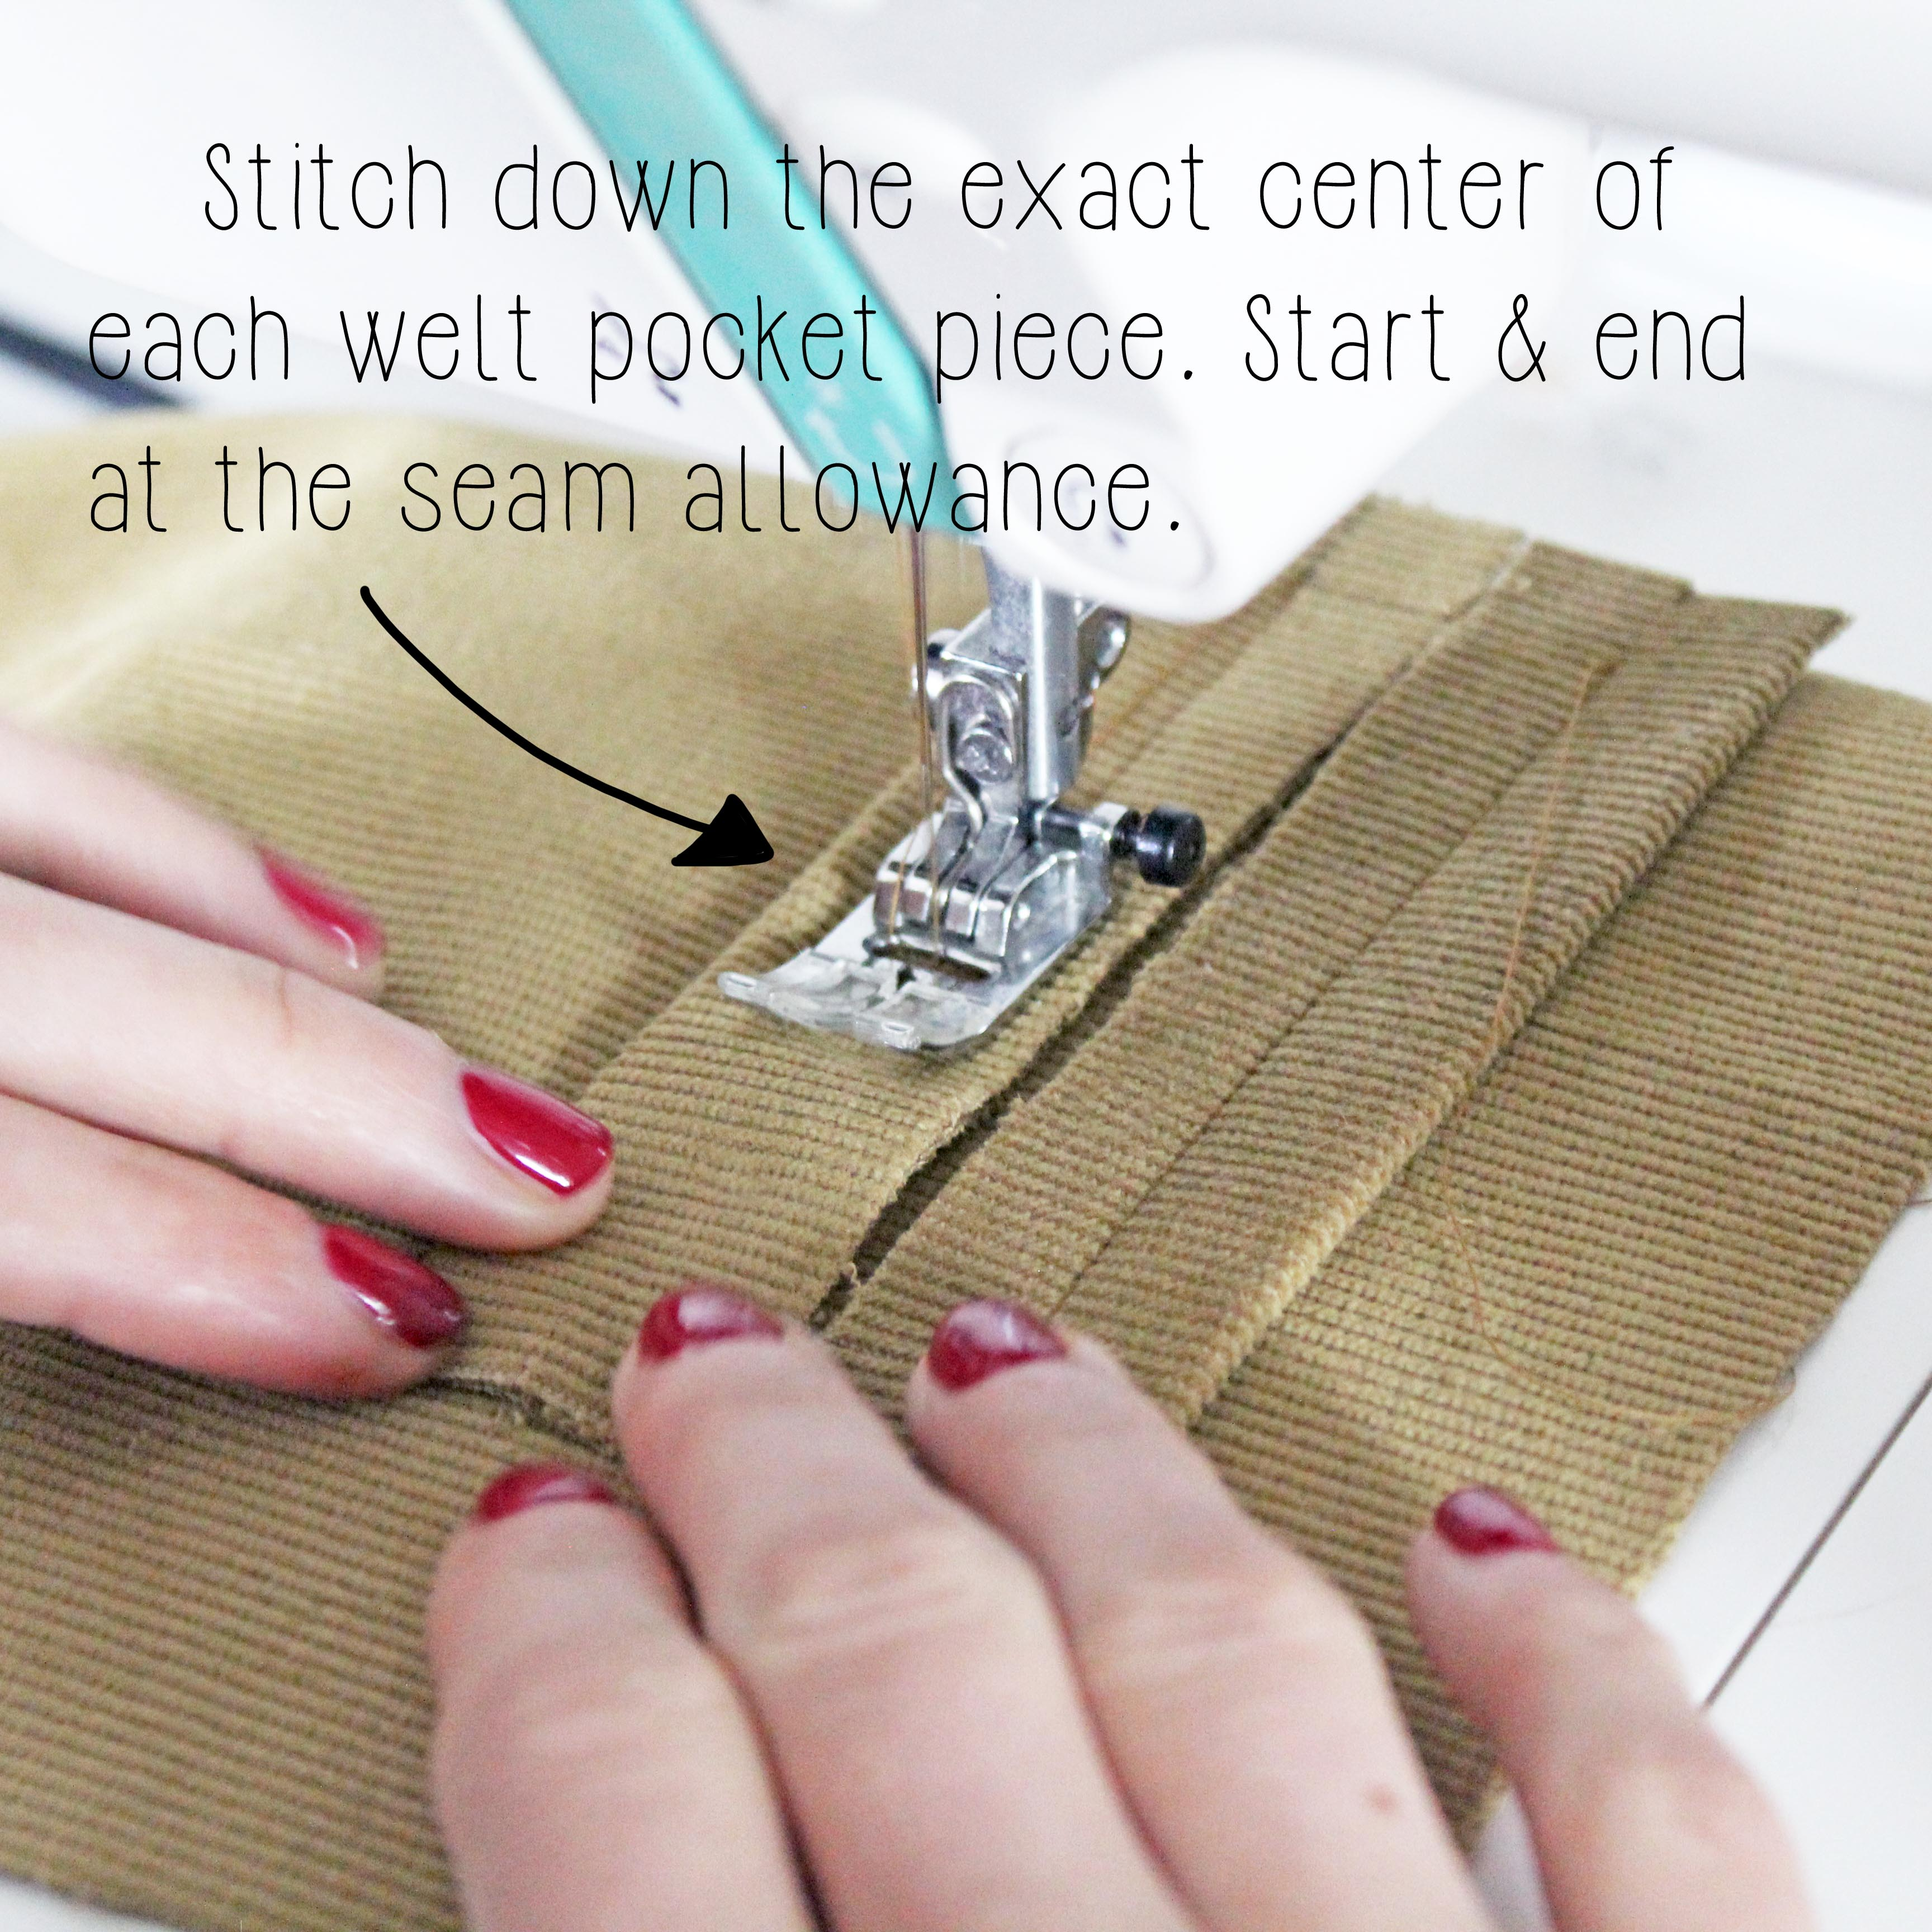 How To Sew A Double Welt Pocket Sewing Tutorial: Step 6.1